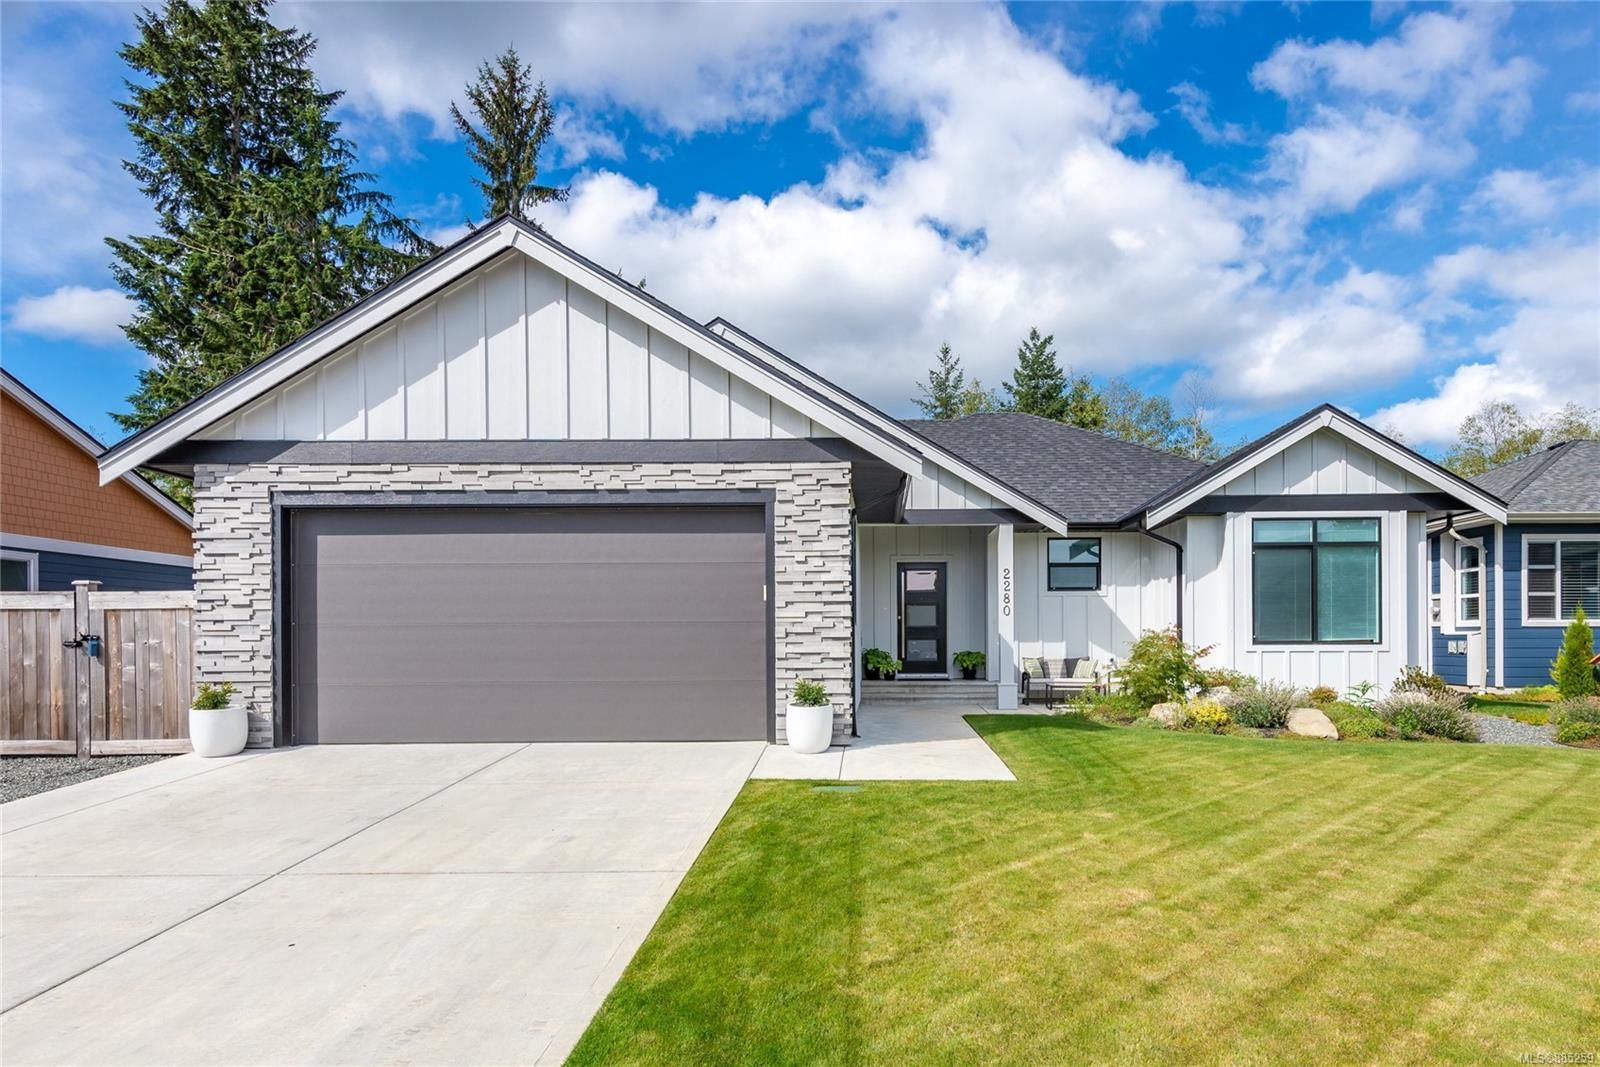 Main Photo: 2280 Forest Grove Dr in : CR Campbell River West House for sale (Campbell River)  : MLS®# 885259